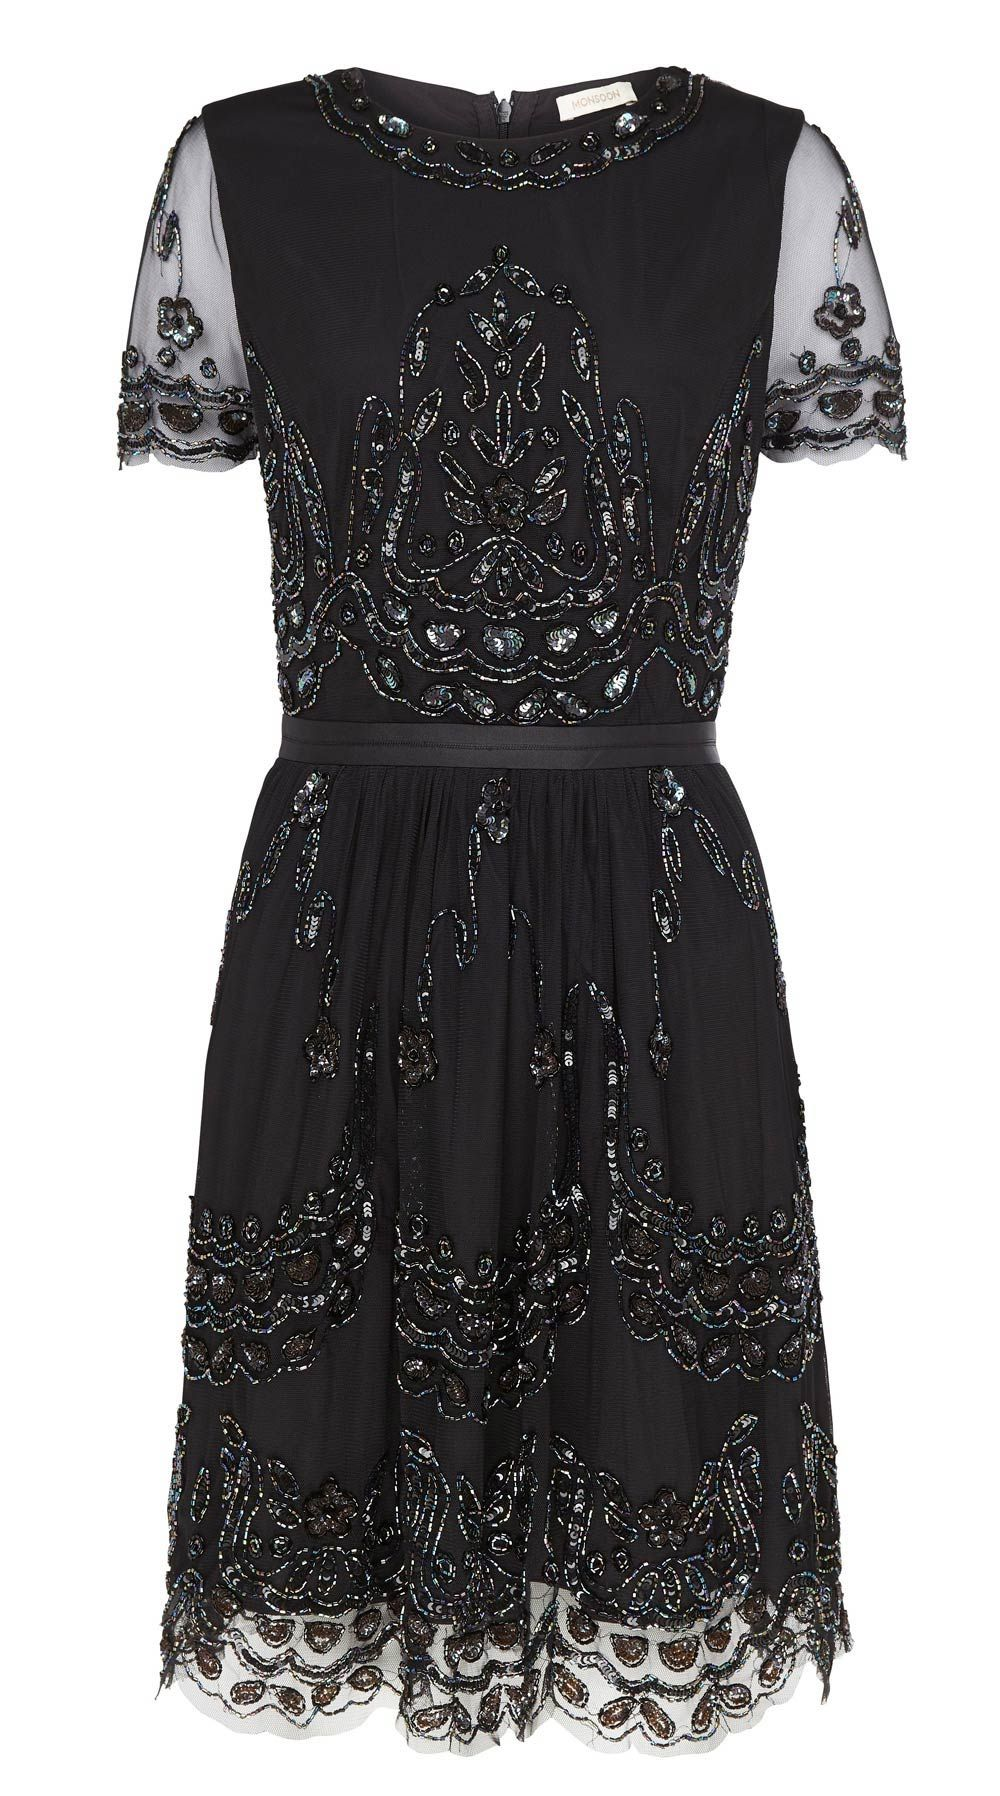 Black bridesmaid dresses for every style of wedding black embellished black bridesmaid dress from monsoon ombrellifo Choice Image